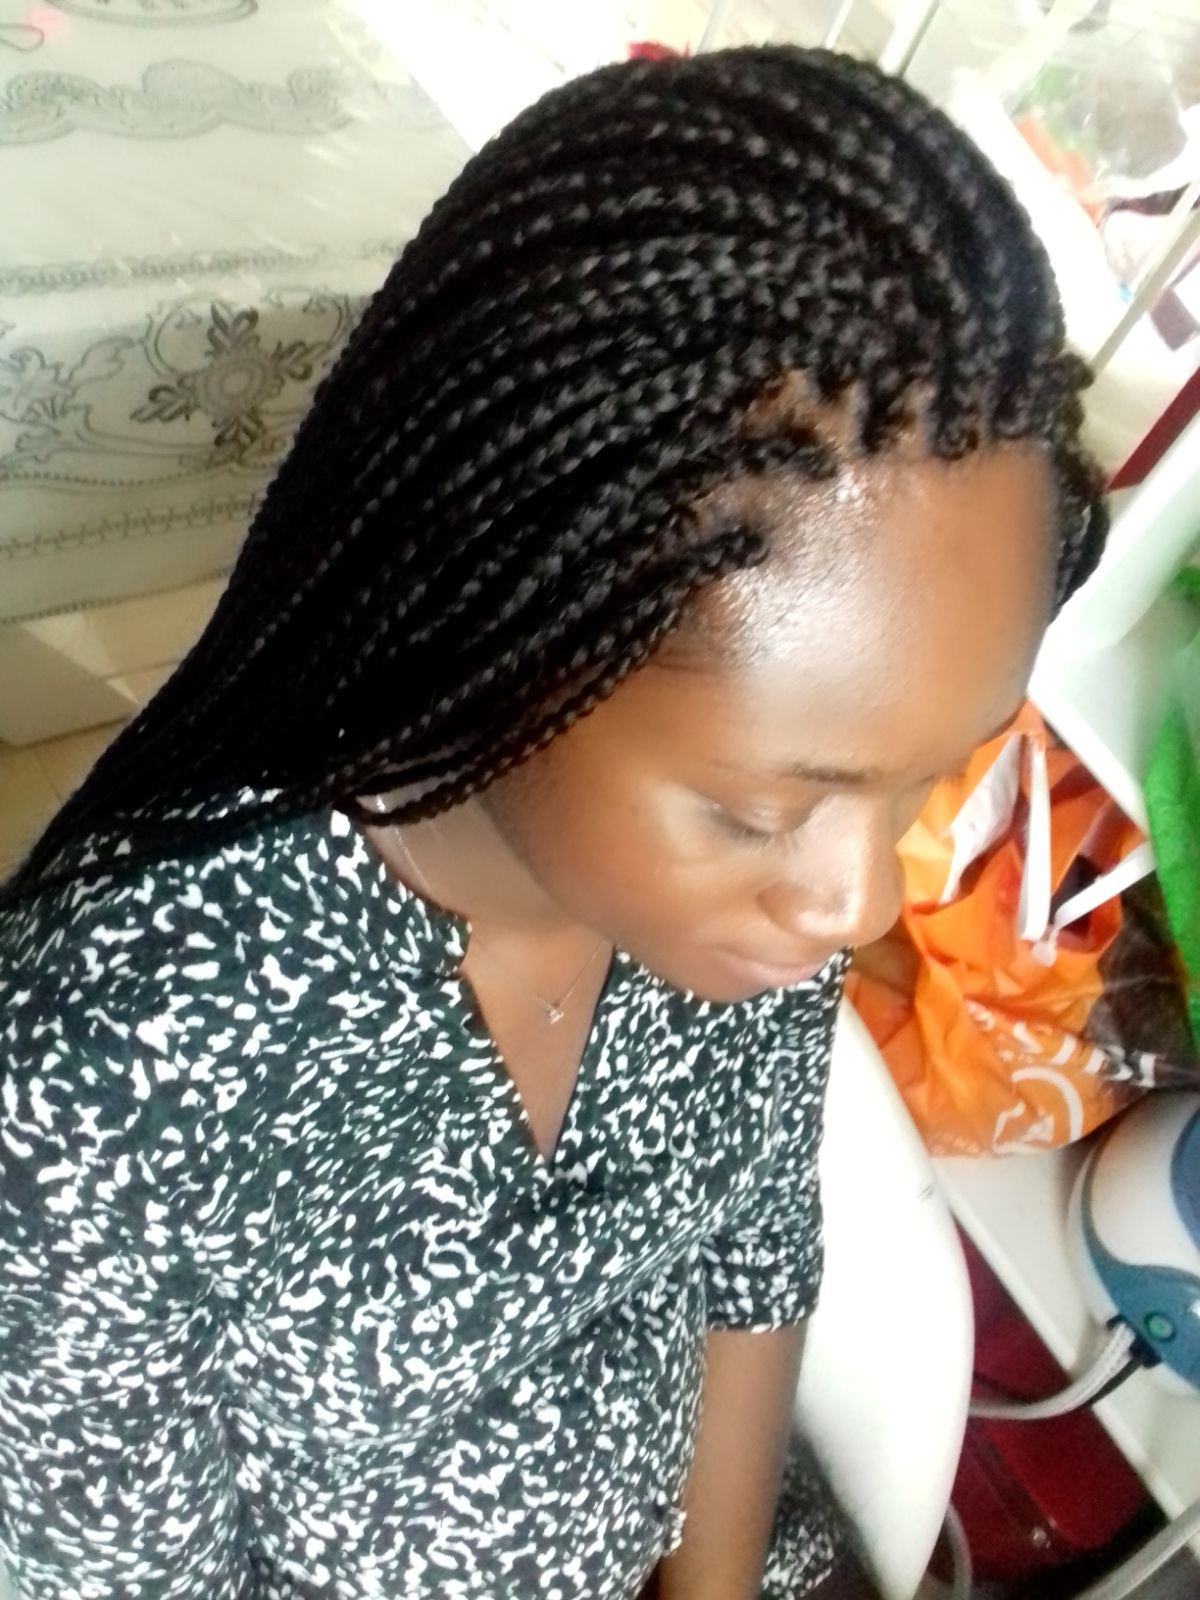 salon de coiffure afro tresse tresses box braids crochet braids vanilles tissages paris 75 77 78 91 92 93 94 95 MWLNWVMF